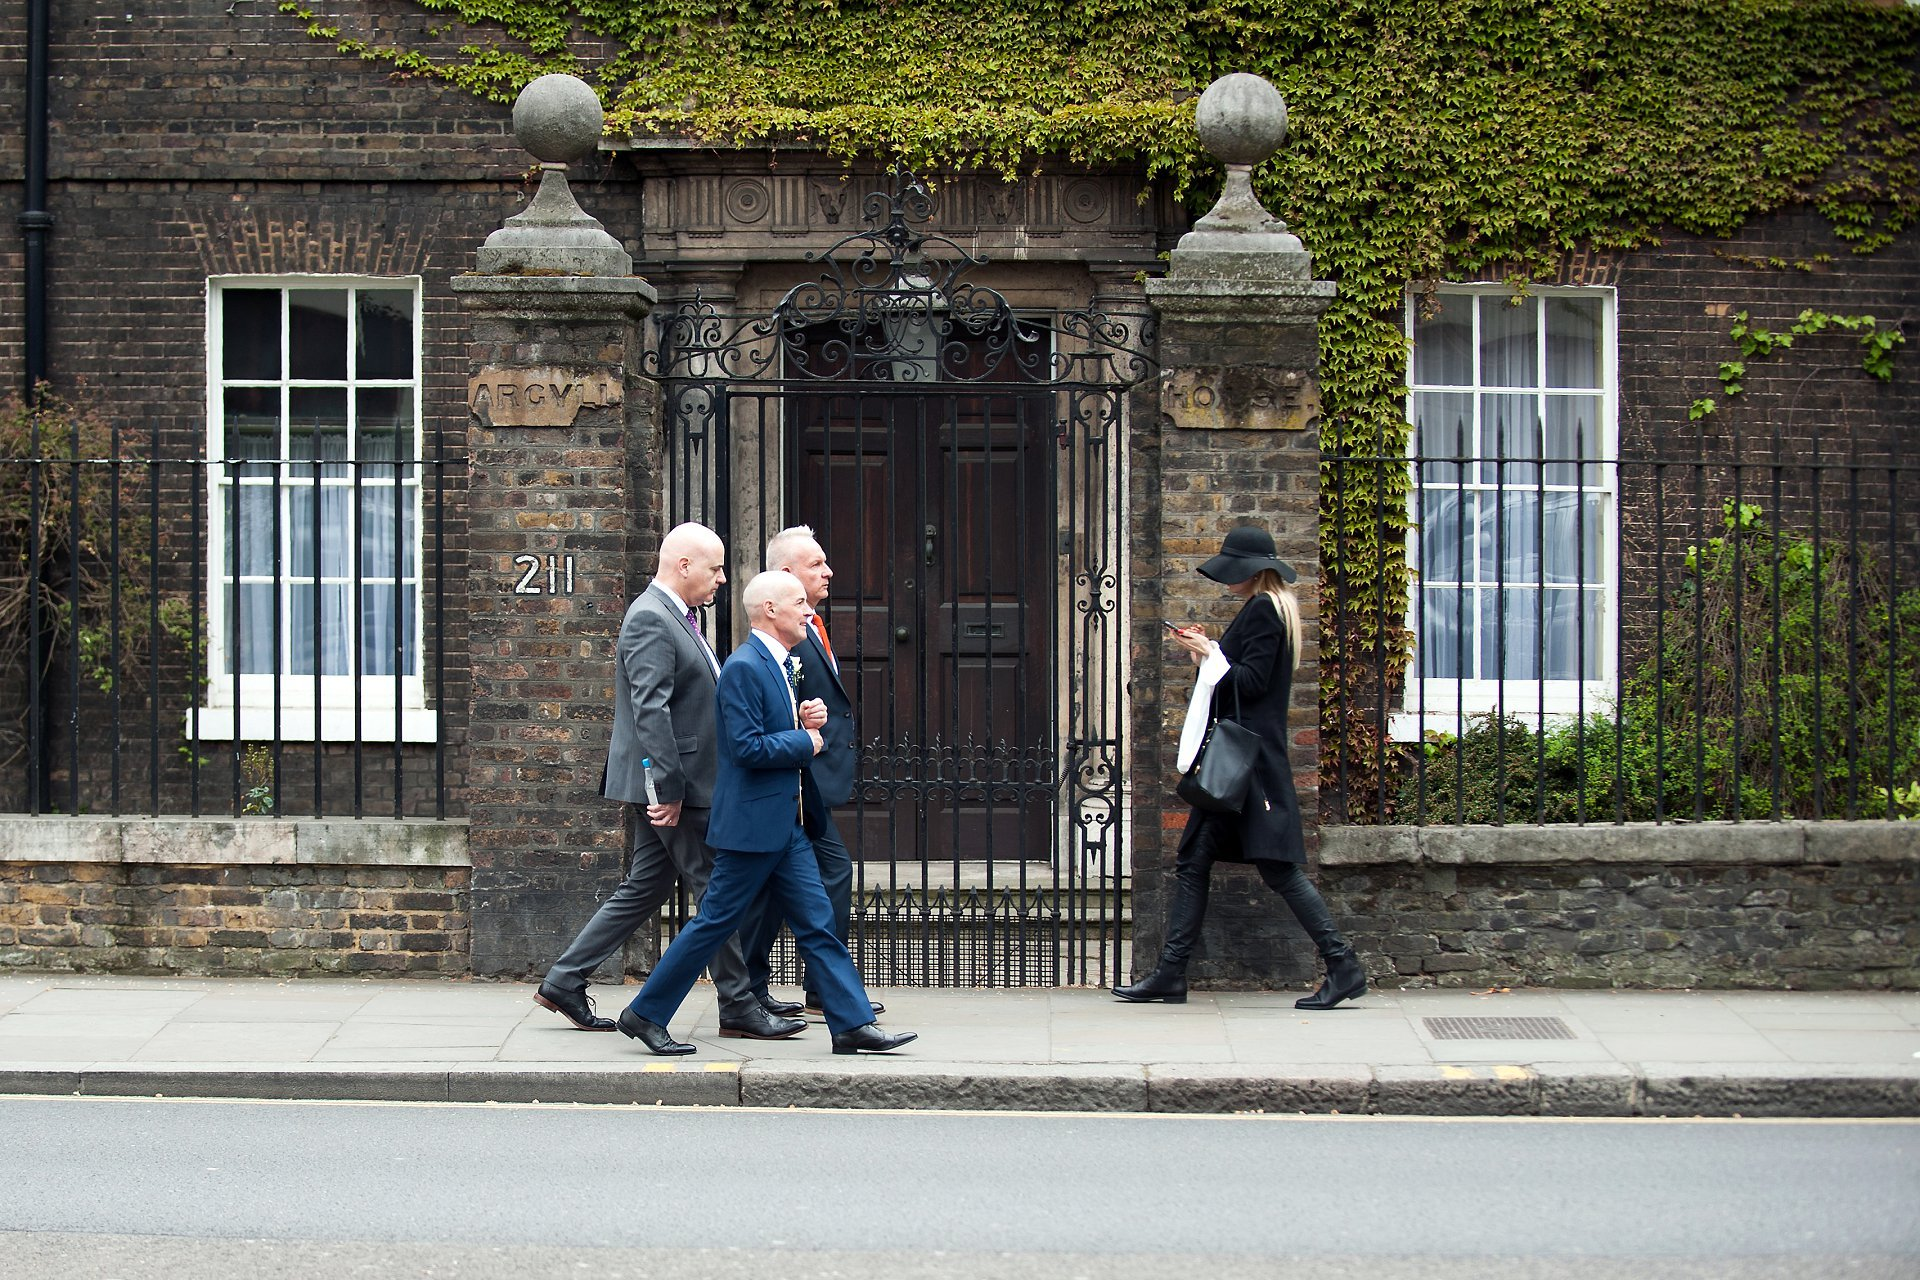 George and friends walking past a typical Chelsea woman on London's King's Road after his wedding